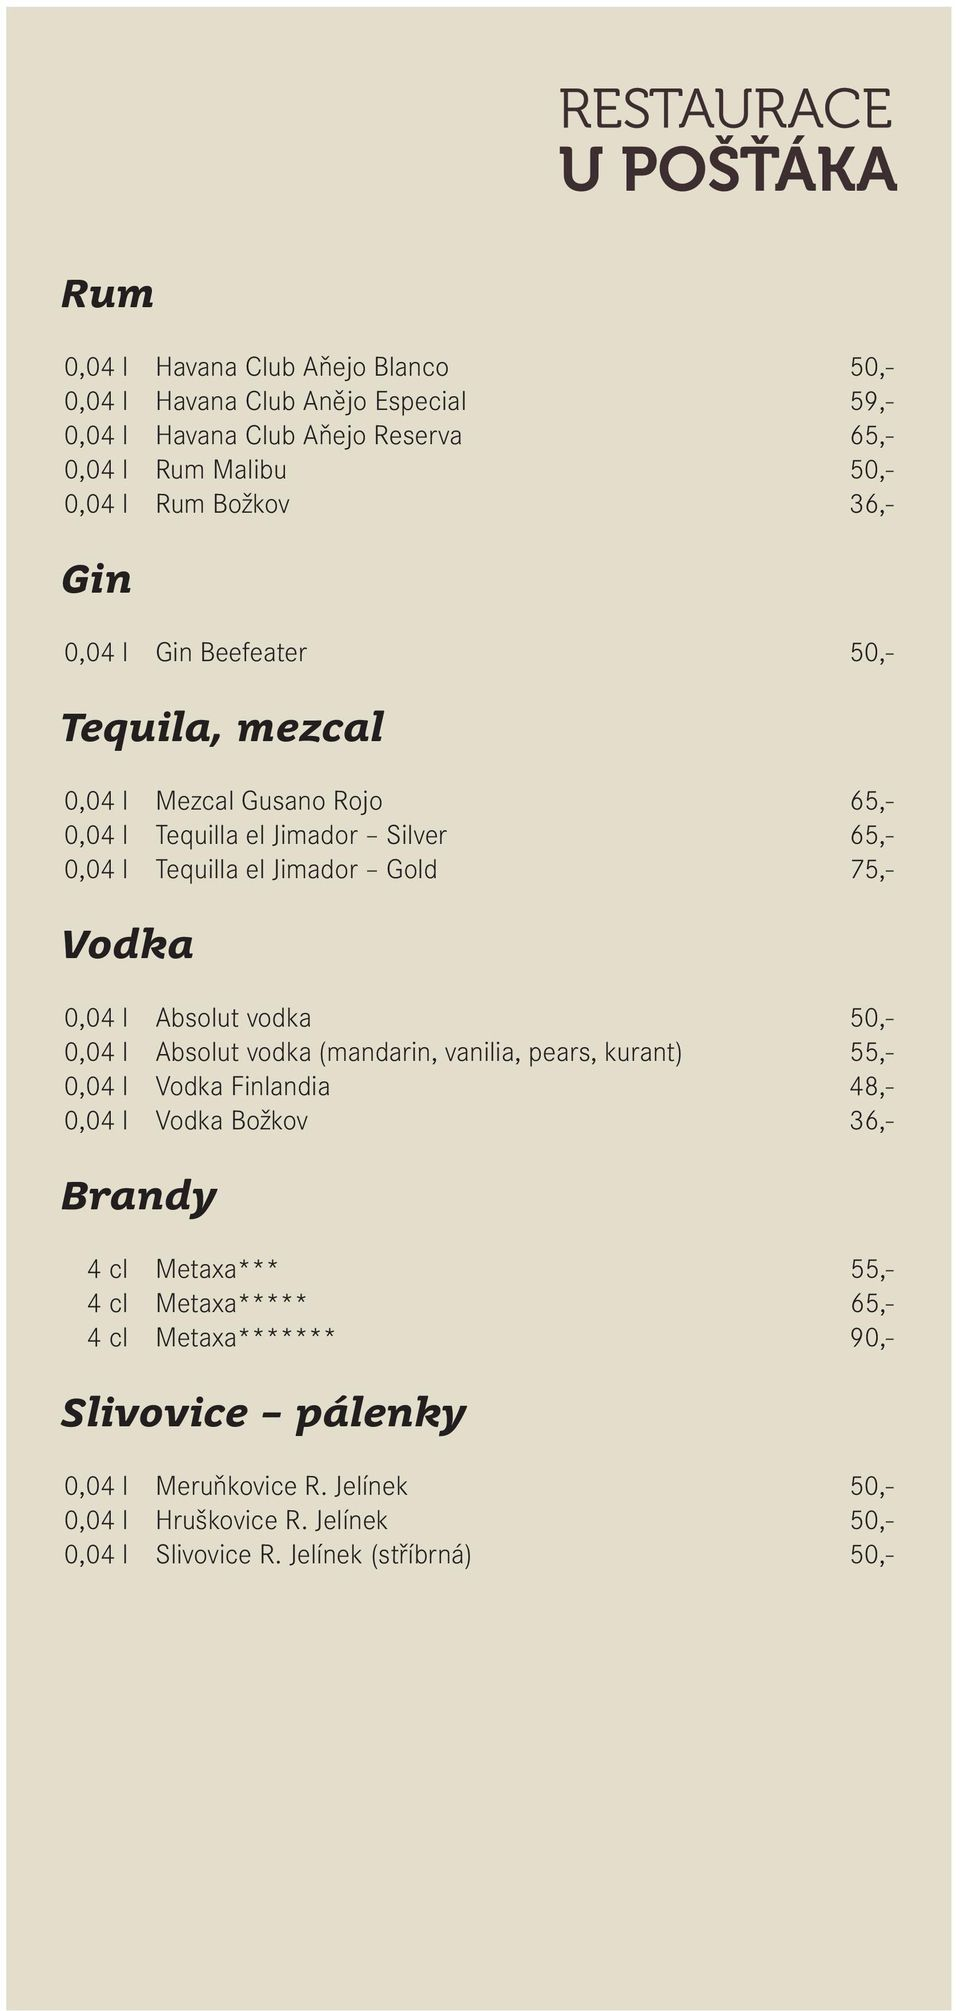 Absolut vodka 50,- 0,04 l Absolut vodka (mandarin, vanilia, pears, kurant) 55,- 0,04 l Vodka Finlandia 48,- 0,04 l Vodka Božkov 36,- Brandy 4 cl Metaxa*** 55,- 4 cl